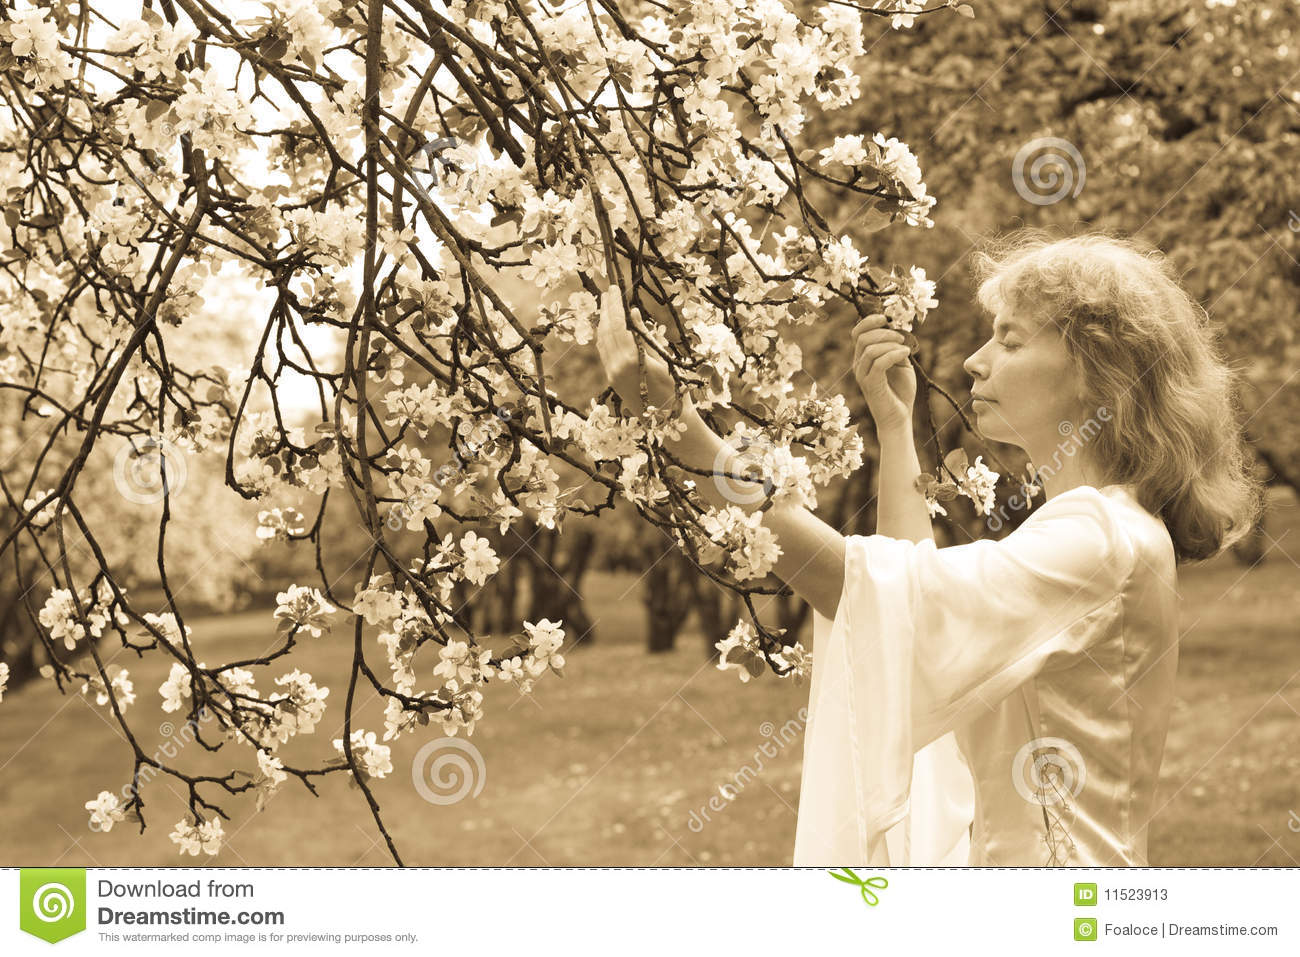 White lady and white flowers